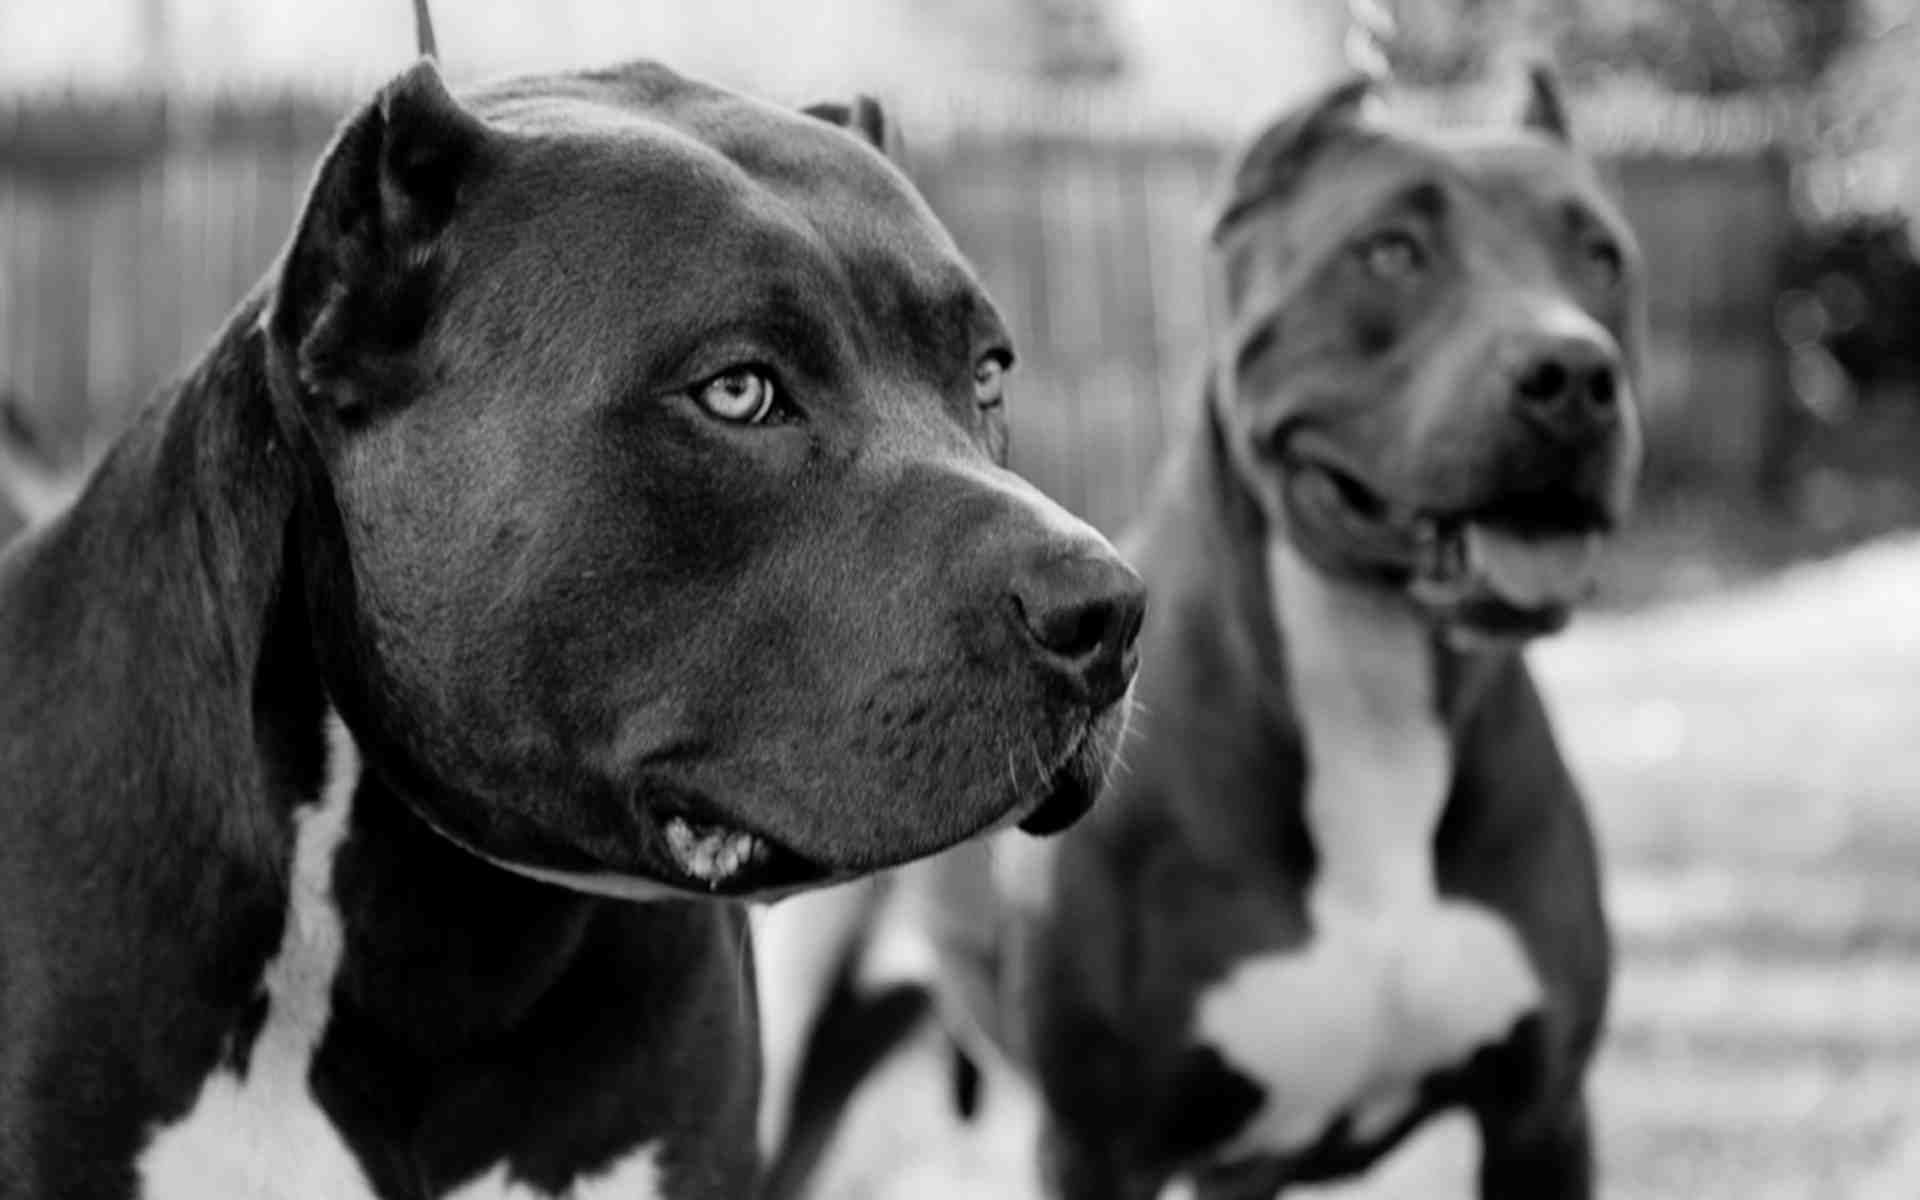 1920x1200 Pitbull Wallpapers Two Pitbulls in Black and White